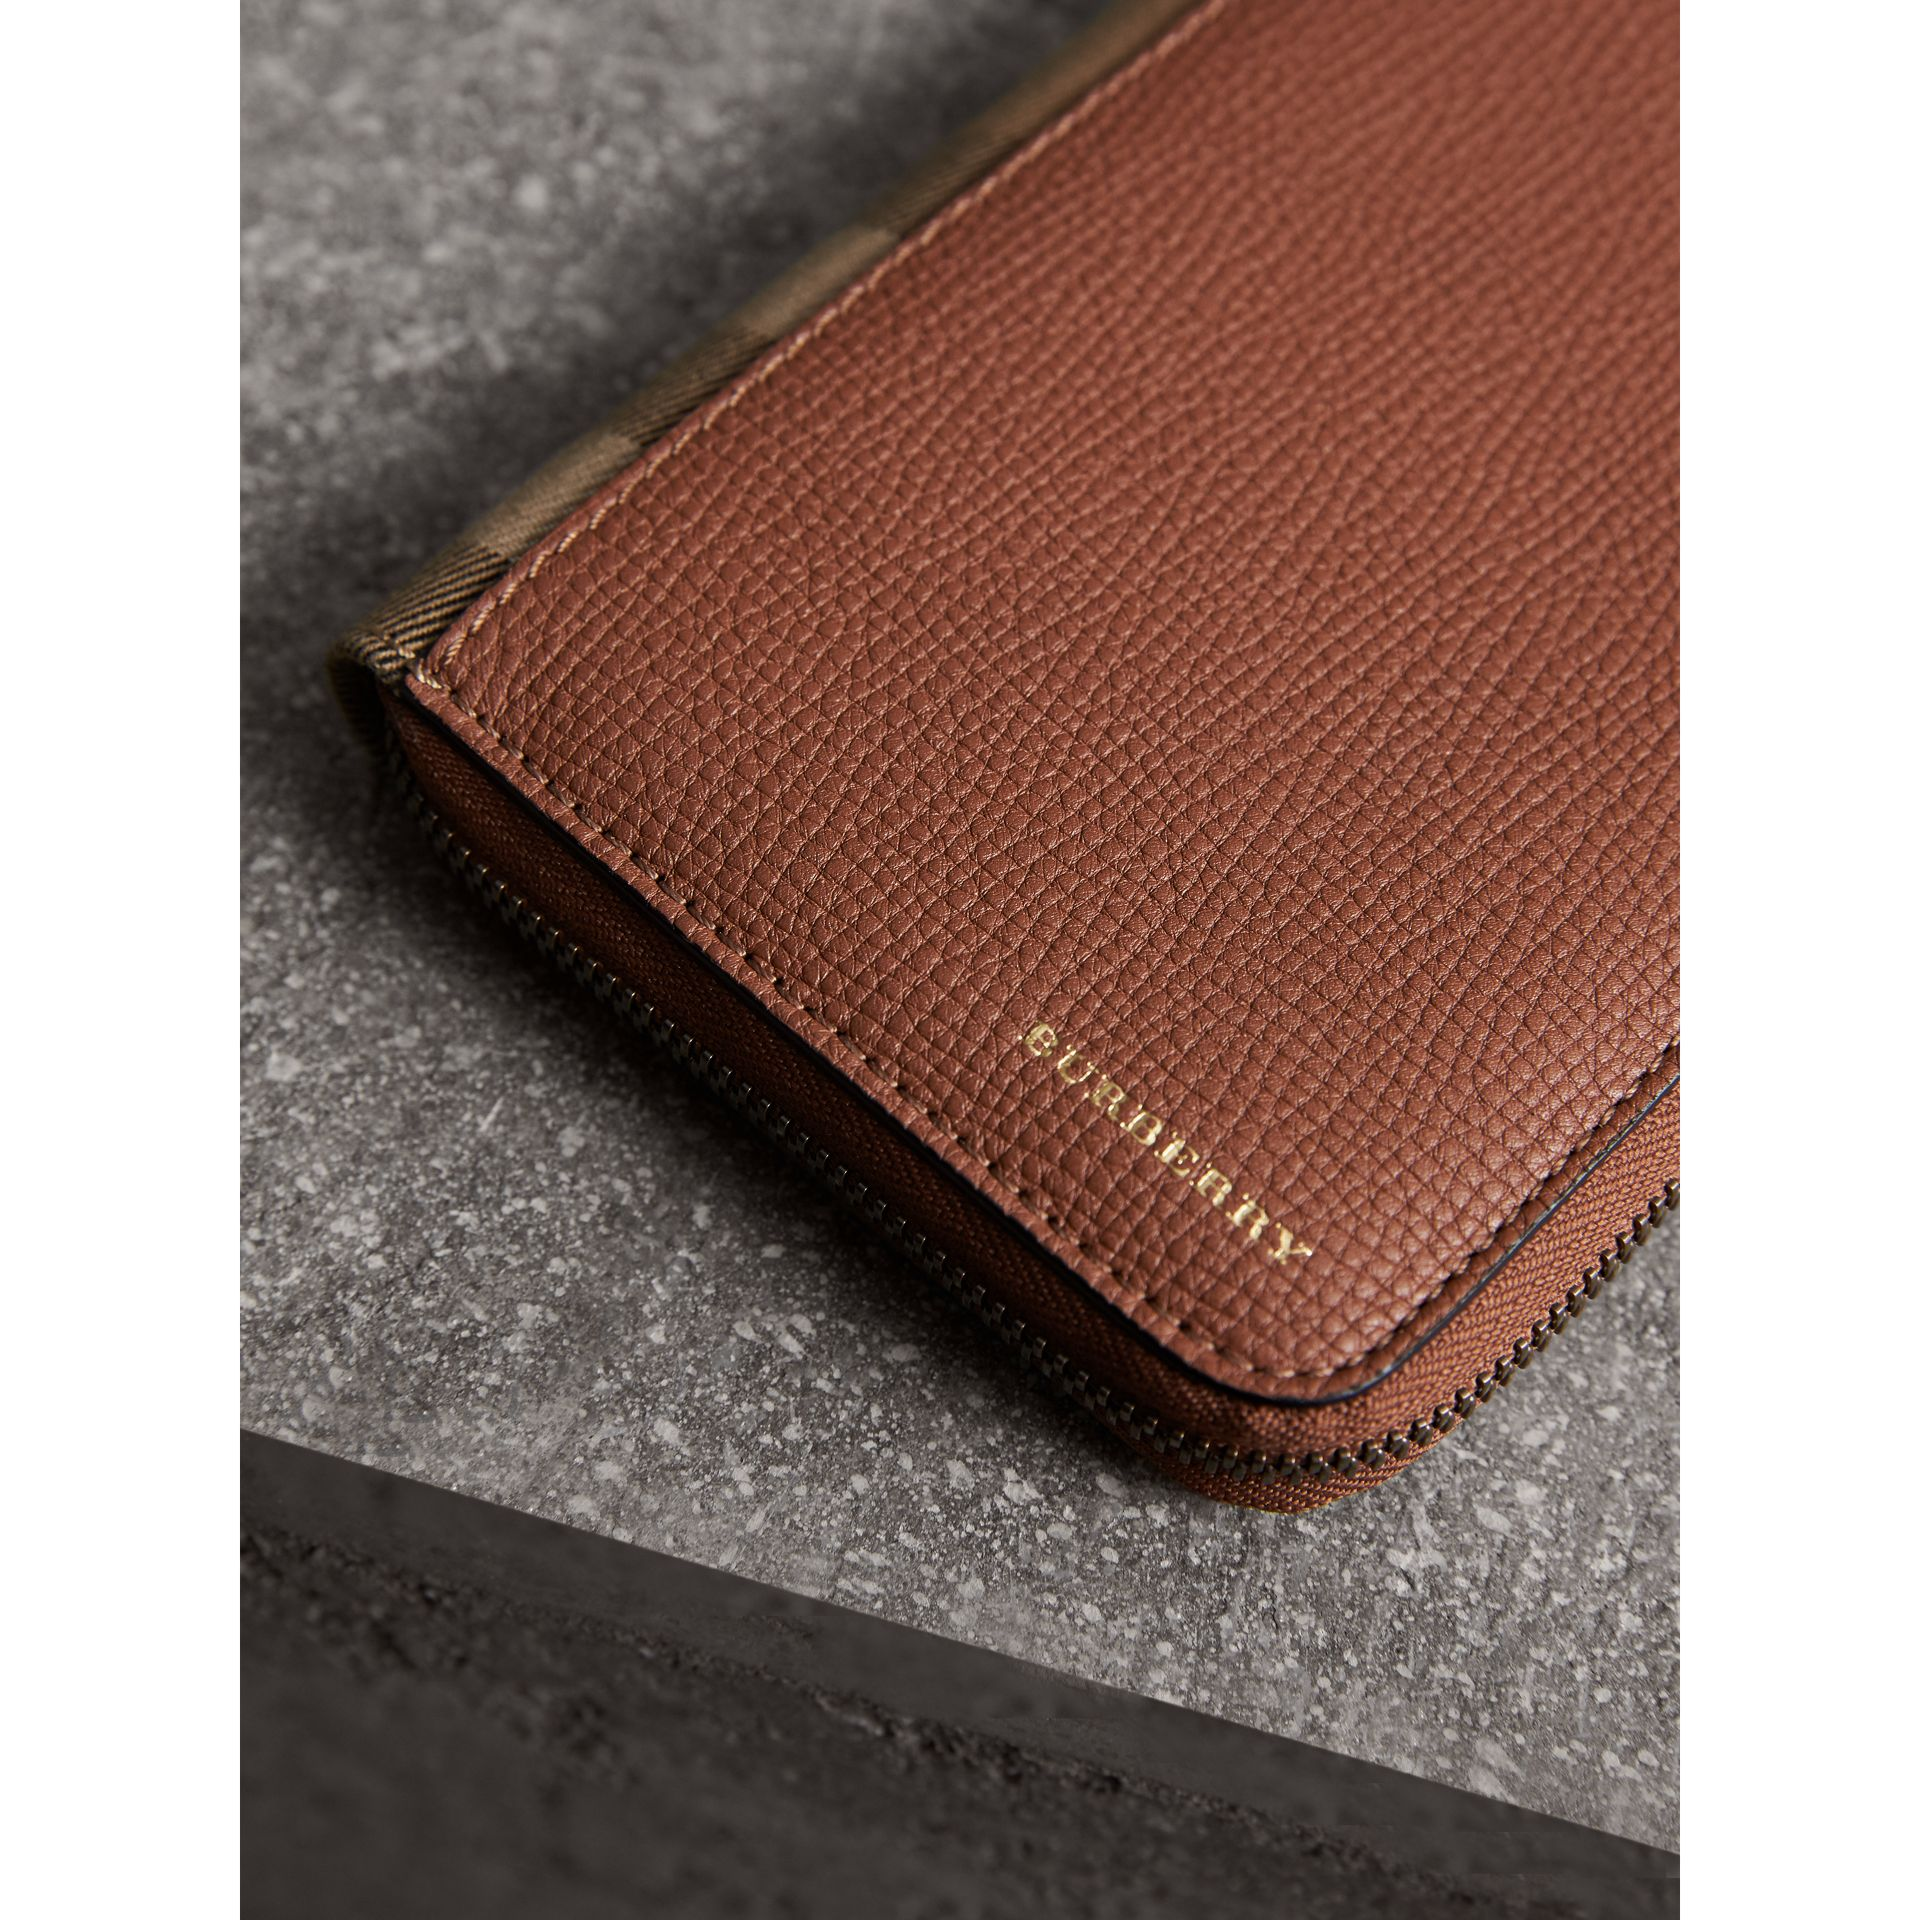 House Check and Grainy Leather Ziparound Wallet in Chestnut Brown - Men | Burberry - gallery image 2